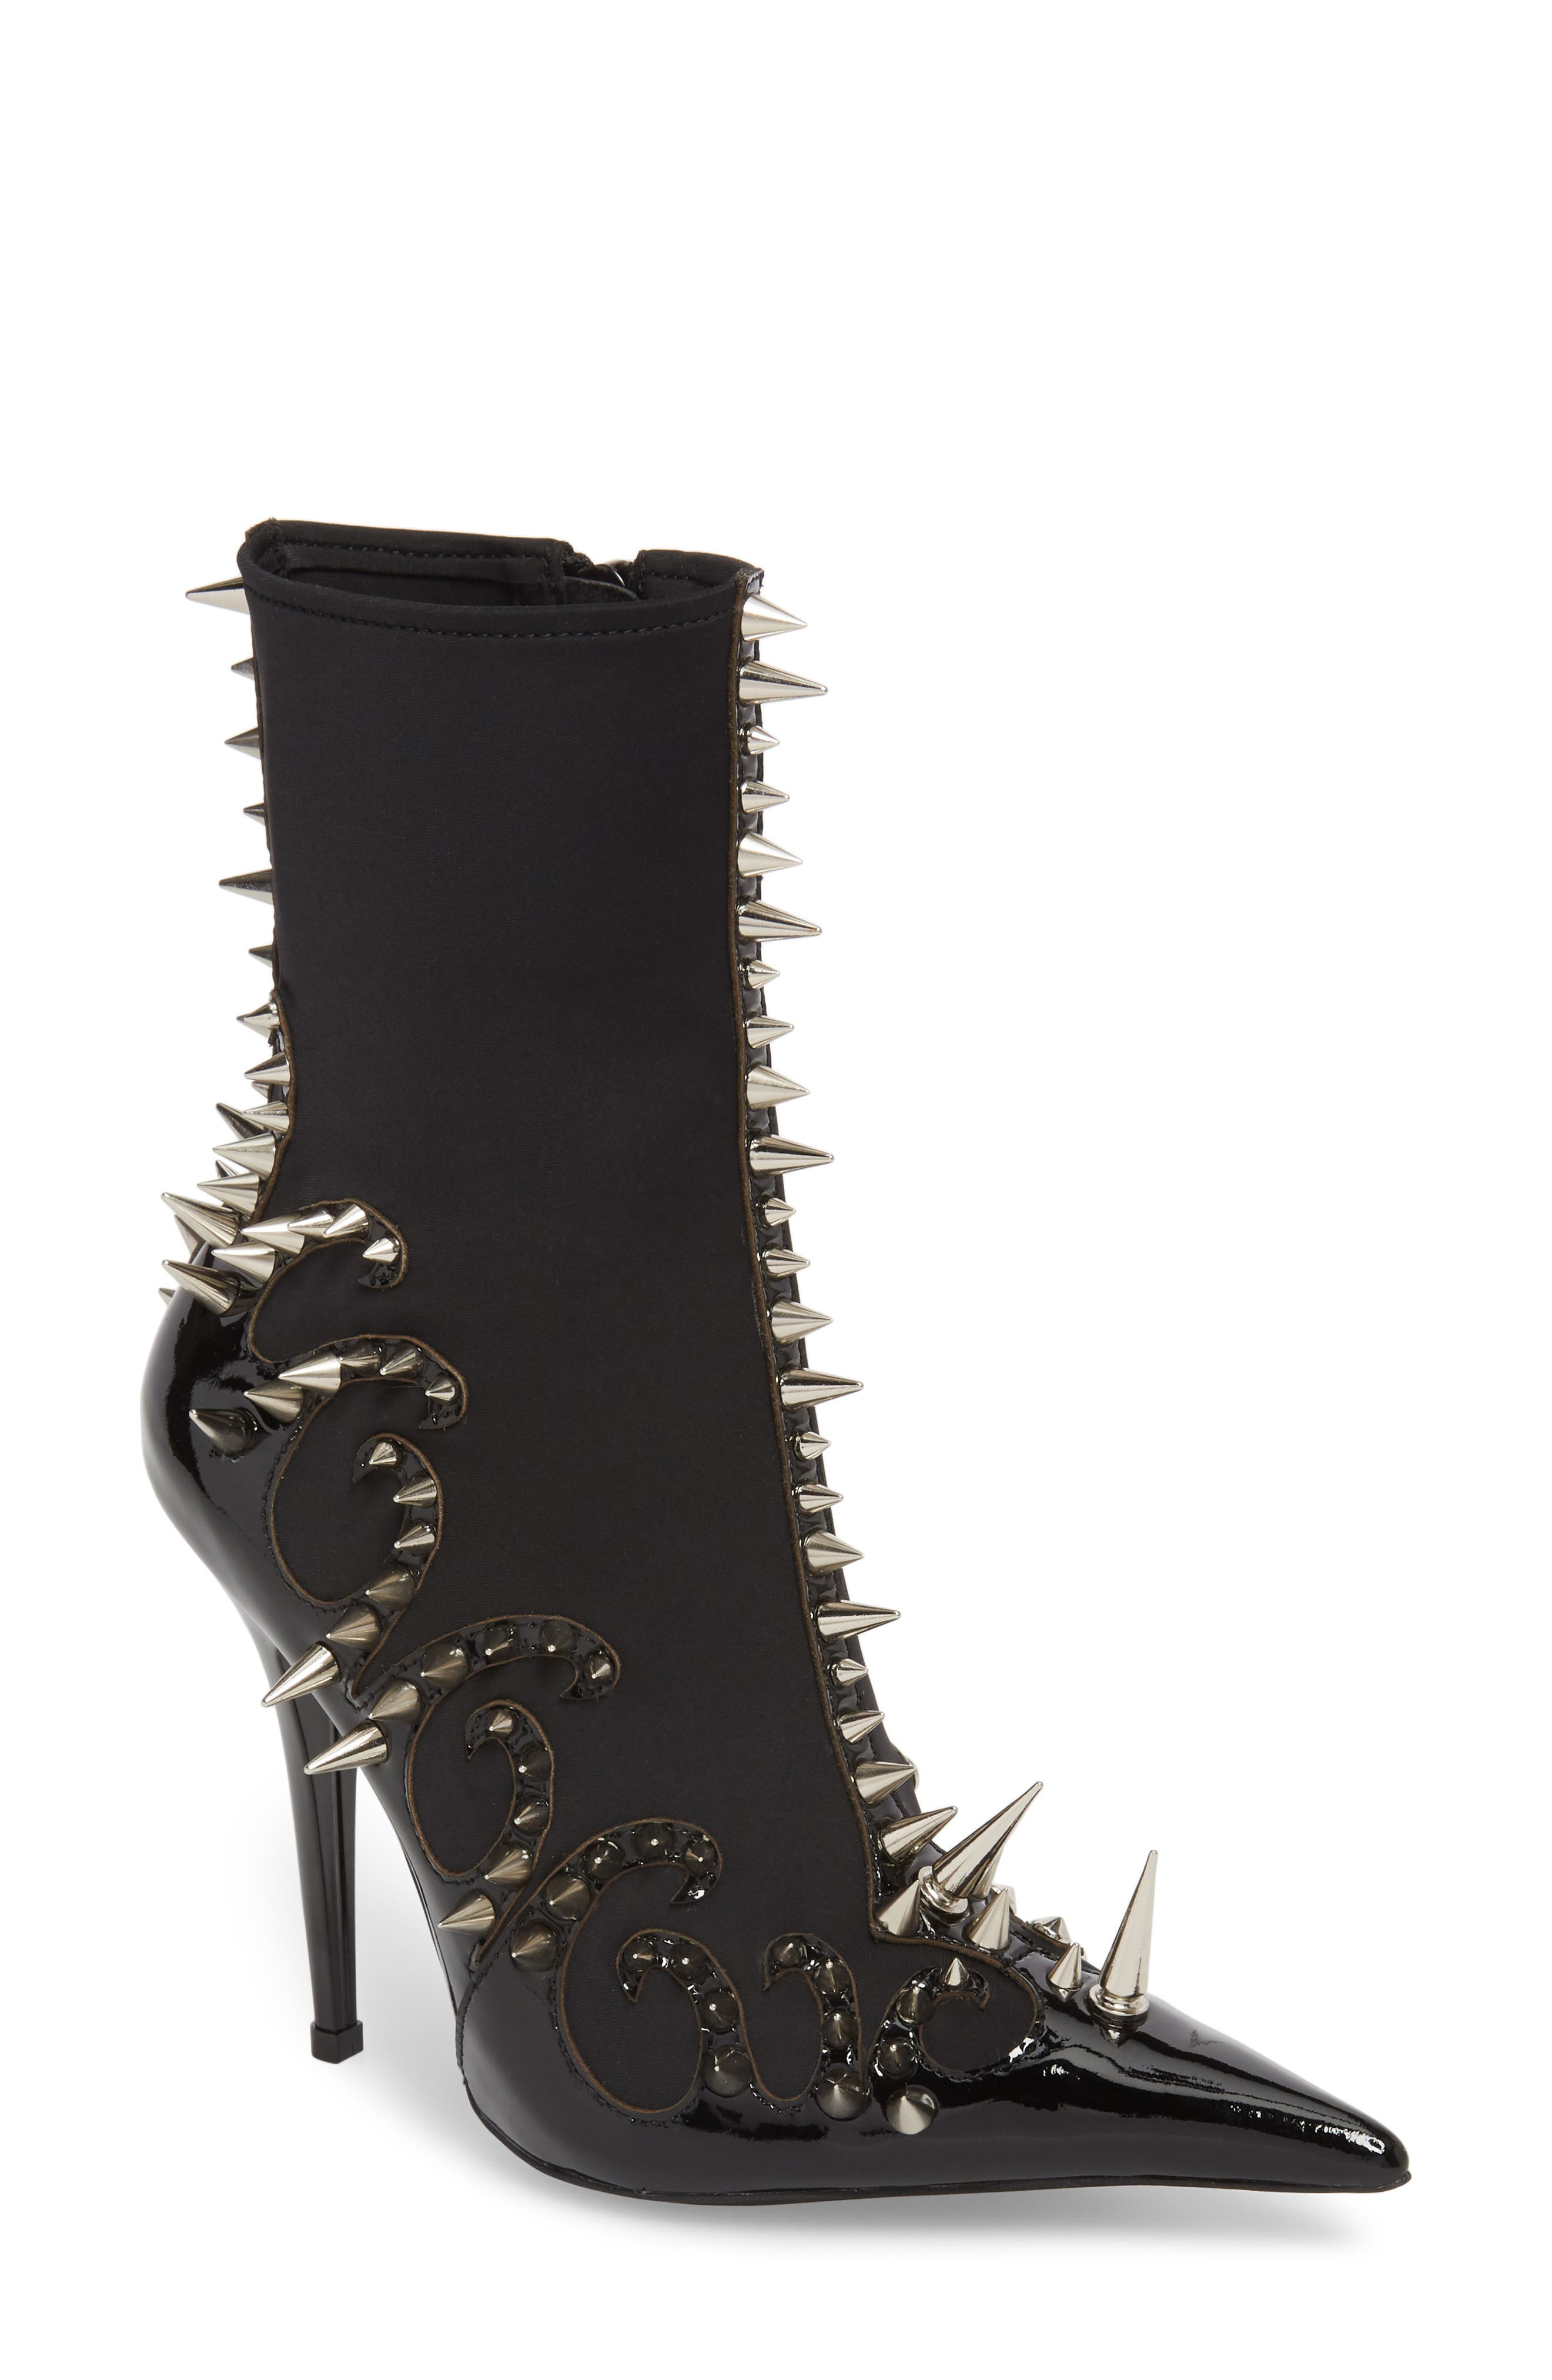 Savage Spike Bootie,                             Main thumbnail 1, color,                             Black/ Silver Patent Leather